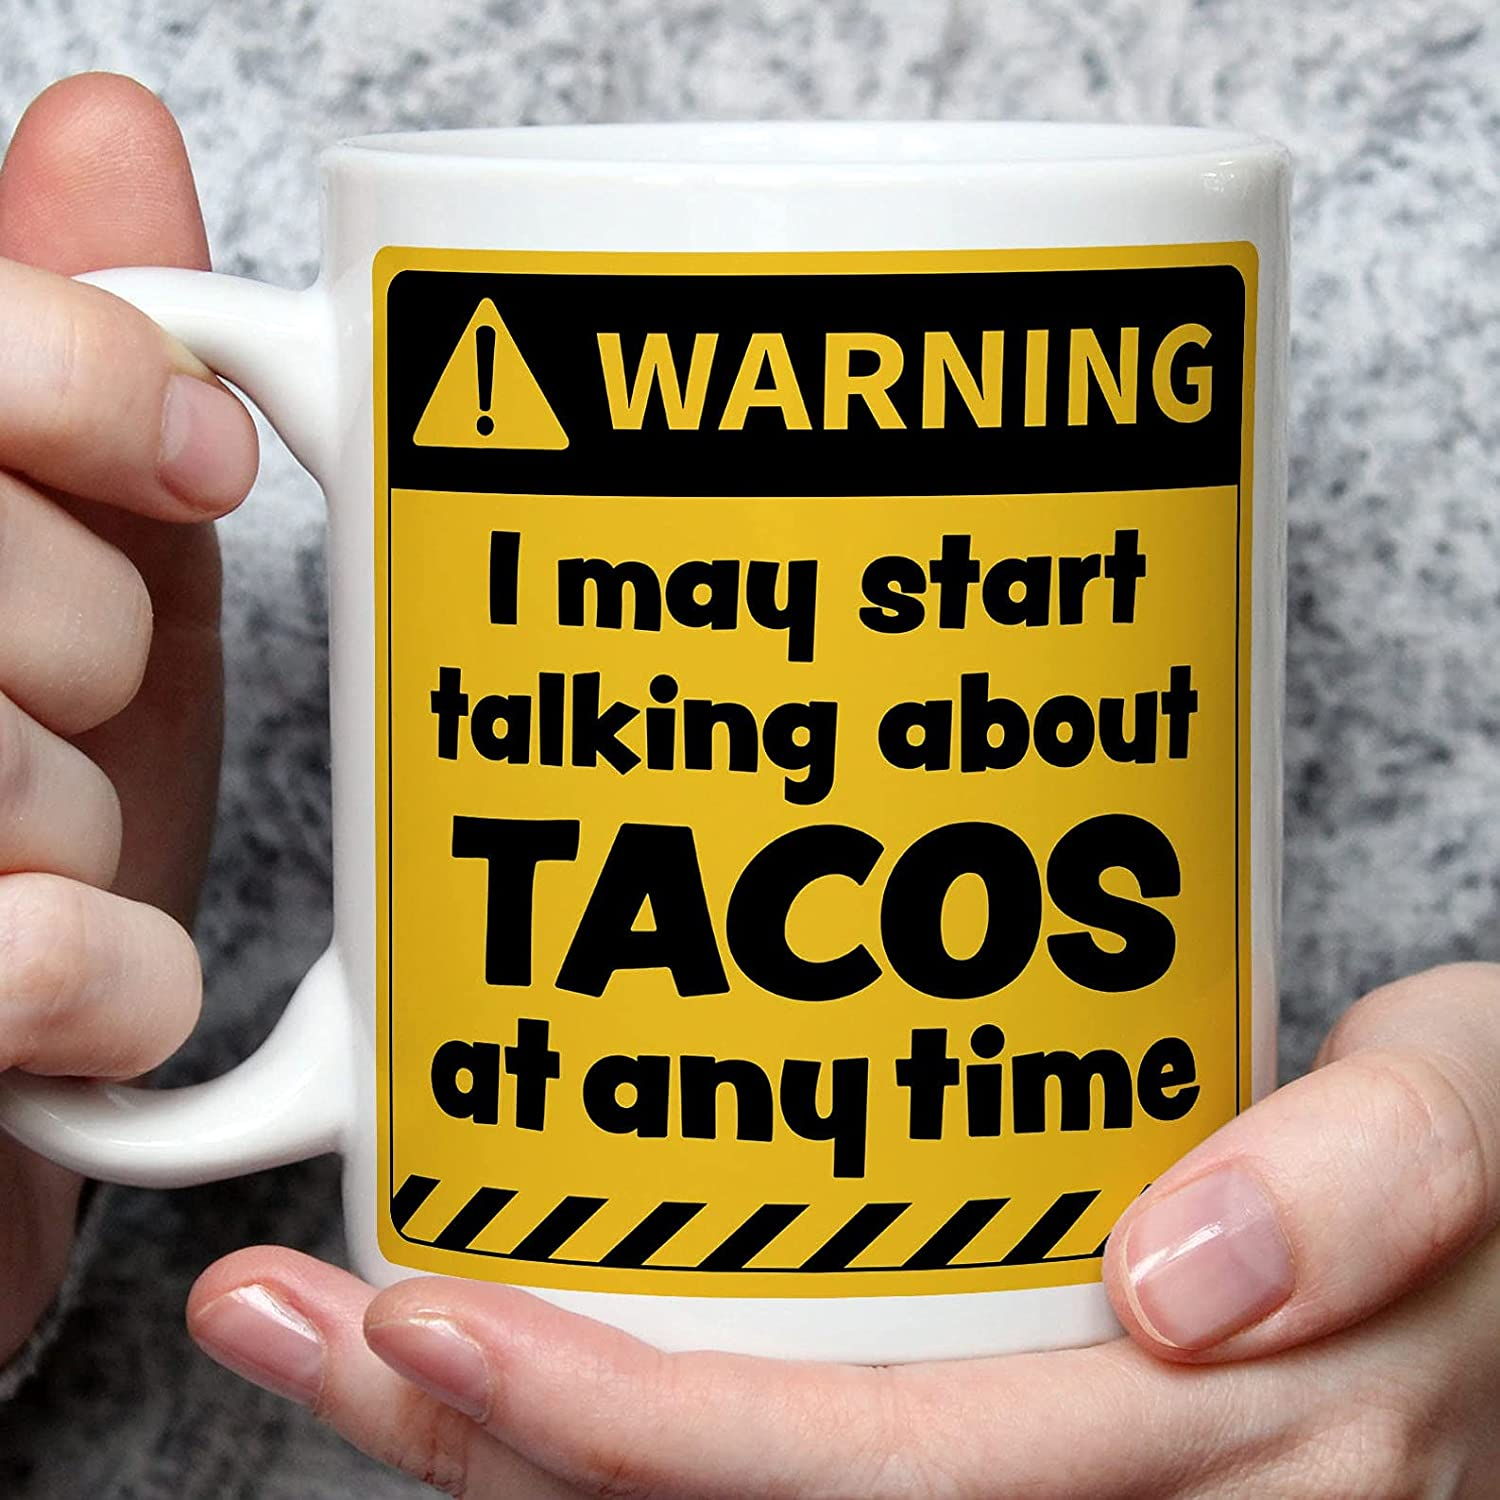 Cheap super special Price reduction price Taco Lover gifts Tacos Theme Funny Ta